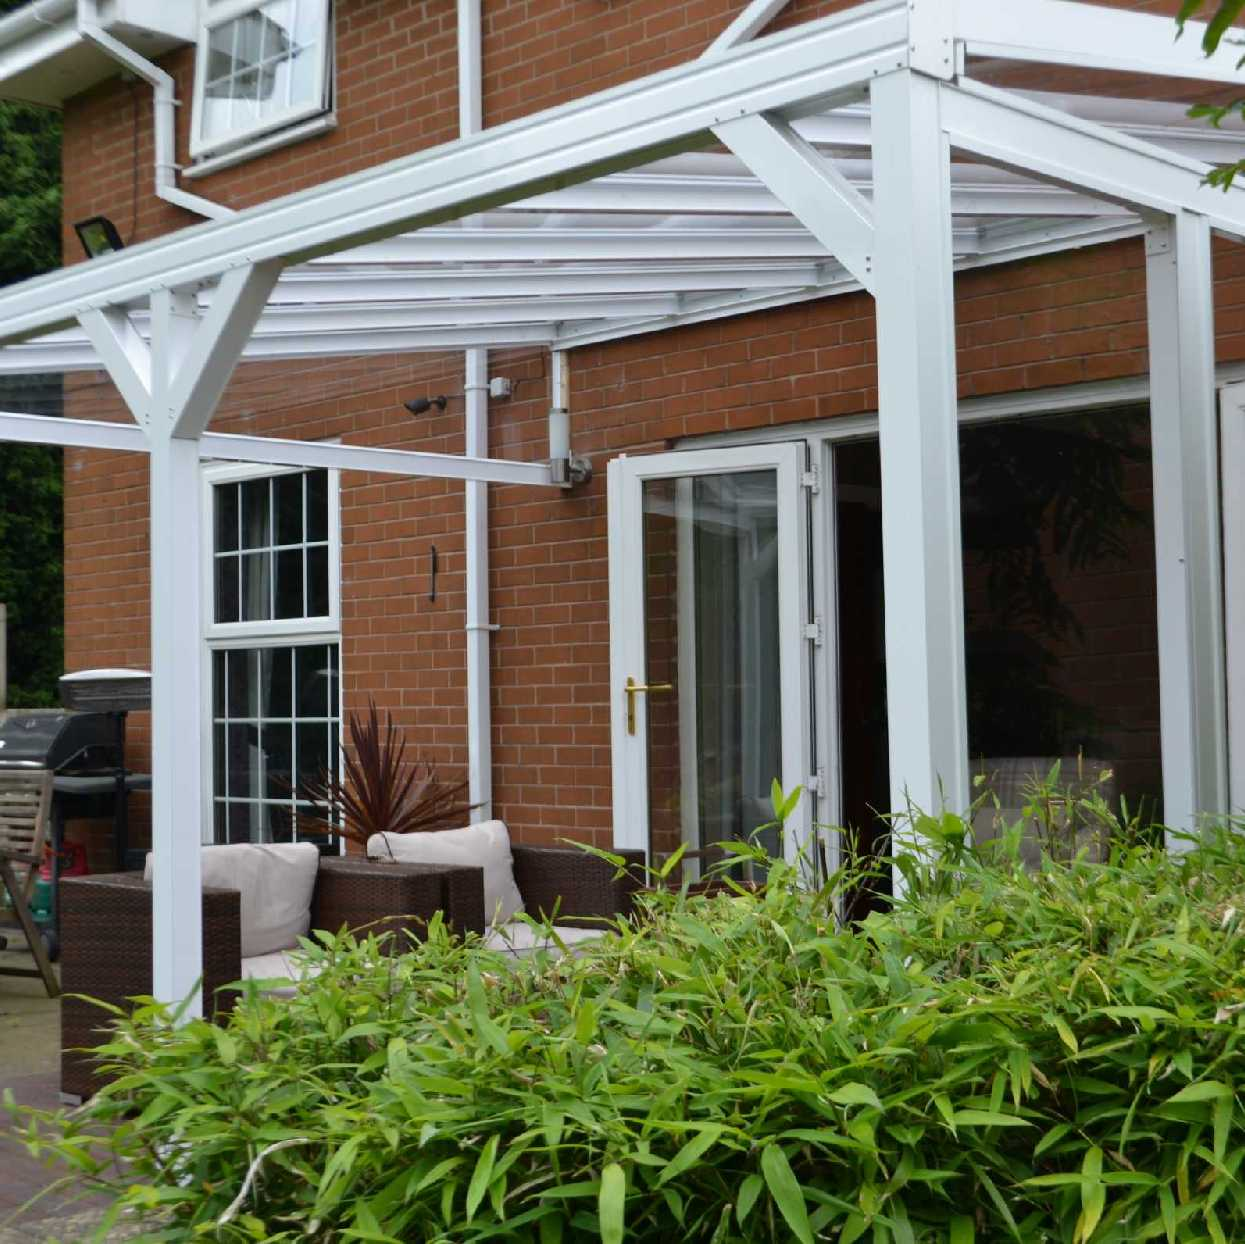 Omega Smart Lean-To Canopy with 6mm Glass Clear Plate Polycarbonate Glazing - 2.8m (W) x 3.5m (P), (2) Supporting Posts from Omega Build